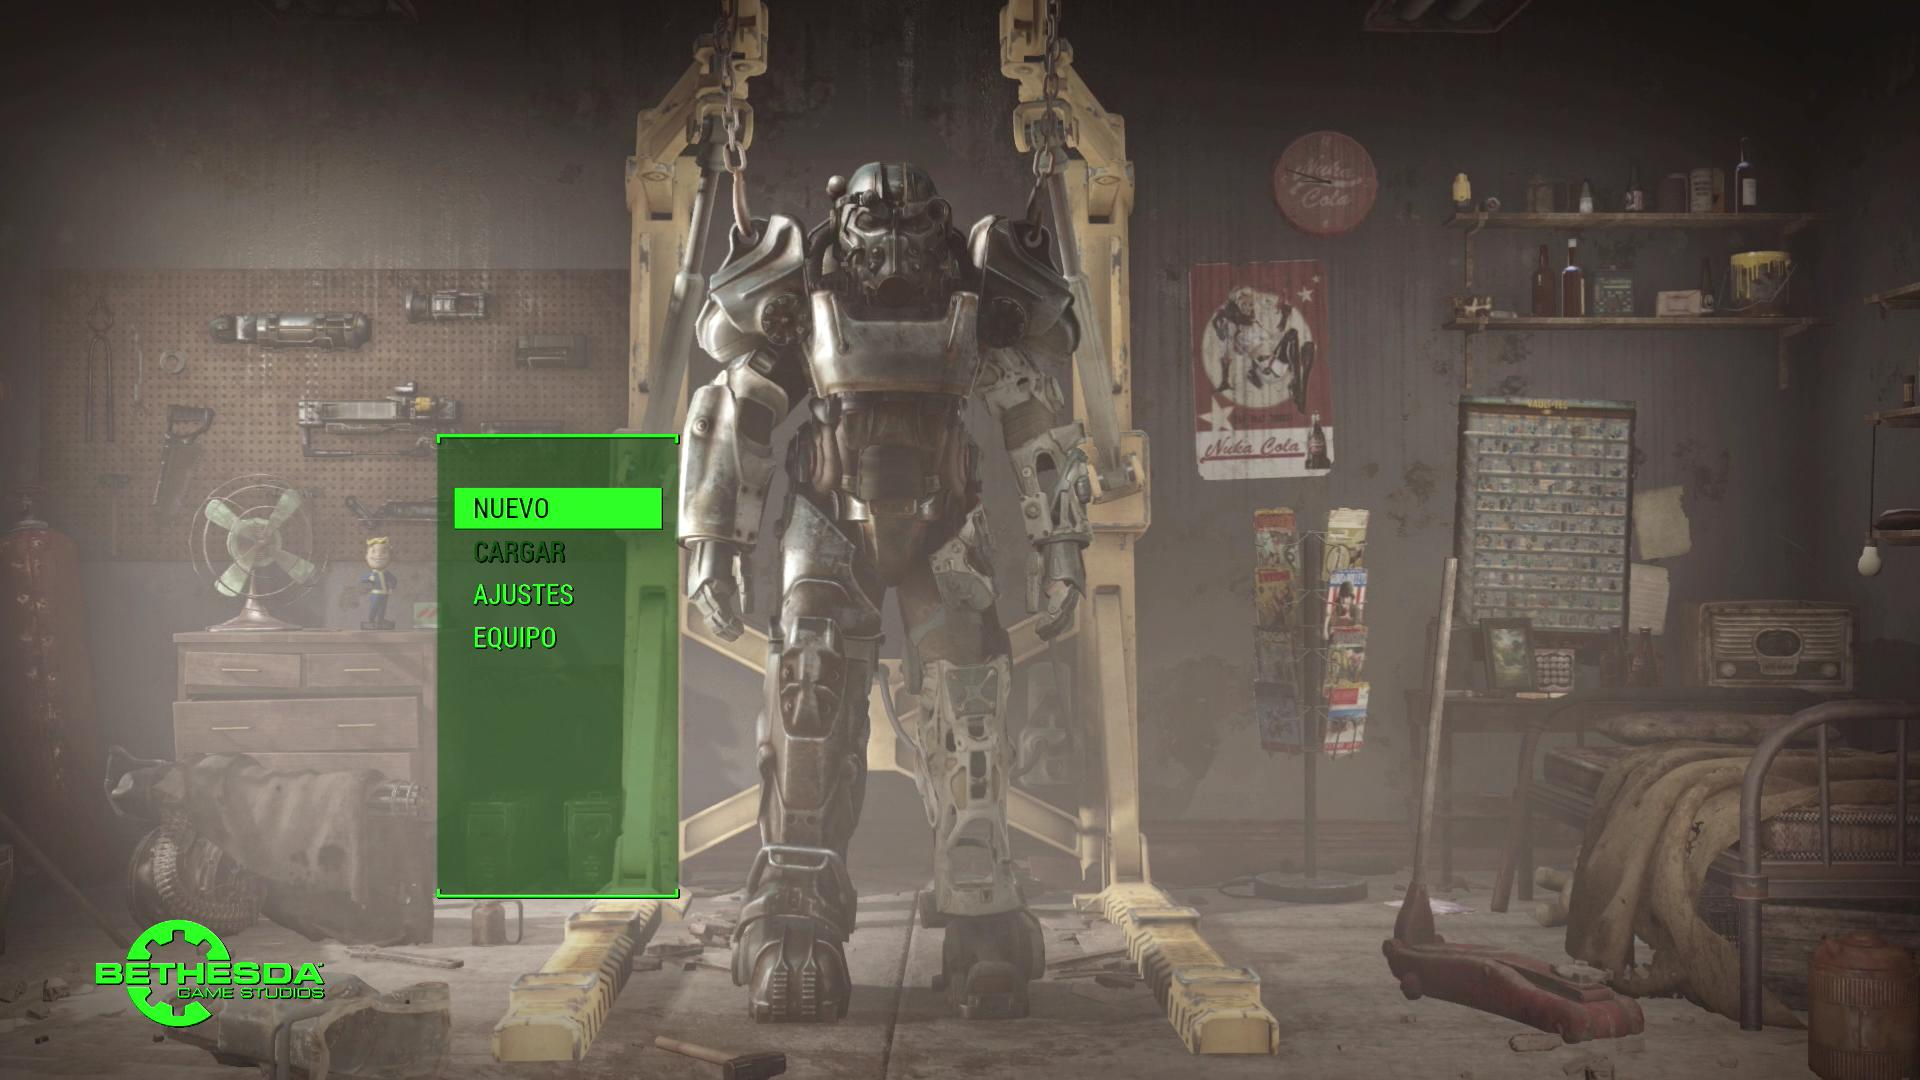 Massive Fallout 4 Leak : Gameplay Details, Footage And